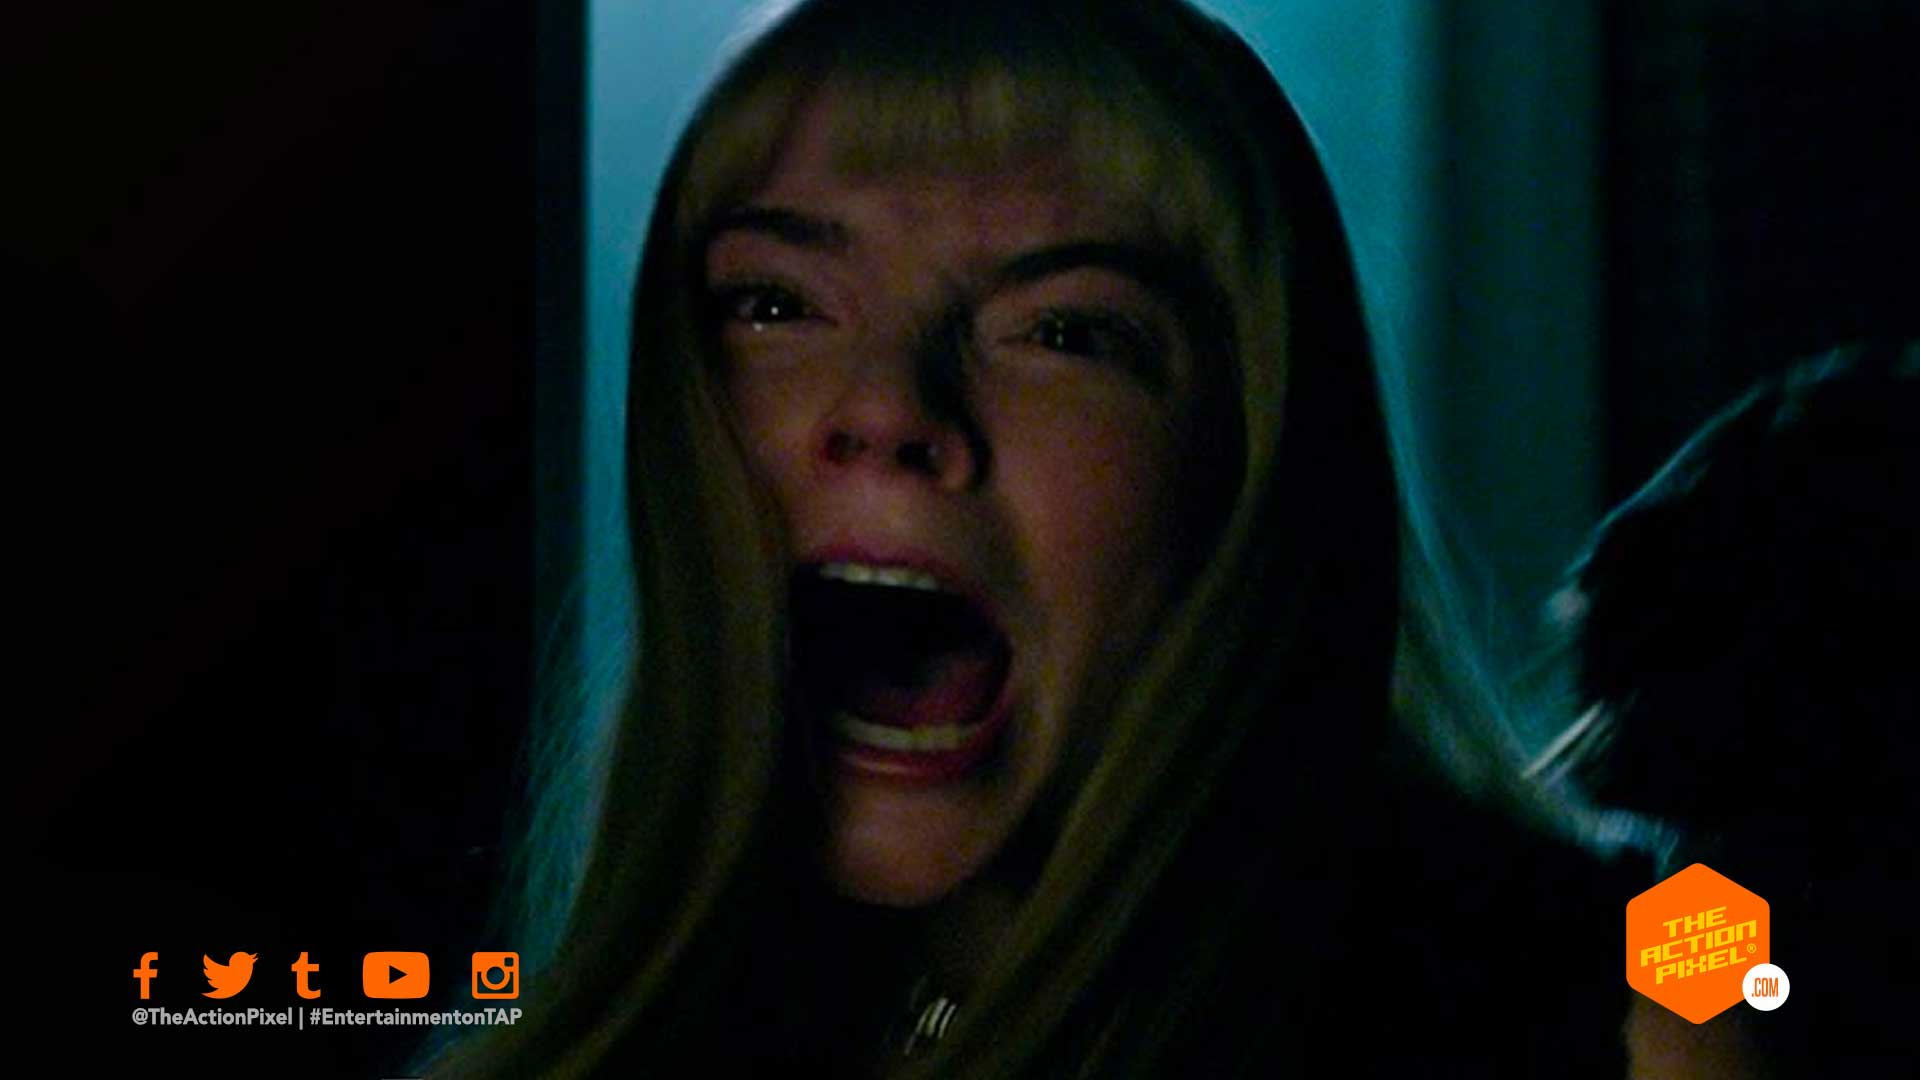 the new mutants, trailer, 20th century fox,magik, x-men, xmen, new mutants, x-men: new mutants, fox, marvel, entertainment on tap, Anya Taylor-Joy, maisie williams,wolfsbane, marvel comics, entertainment on tap, the action pixel,poster, promo, josh boone, pg-13, rating, the new mutants, the new mutants release date, josh boone, featured